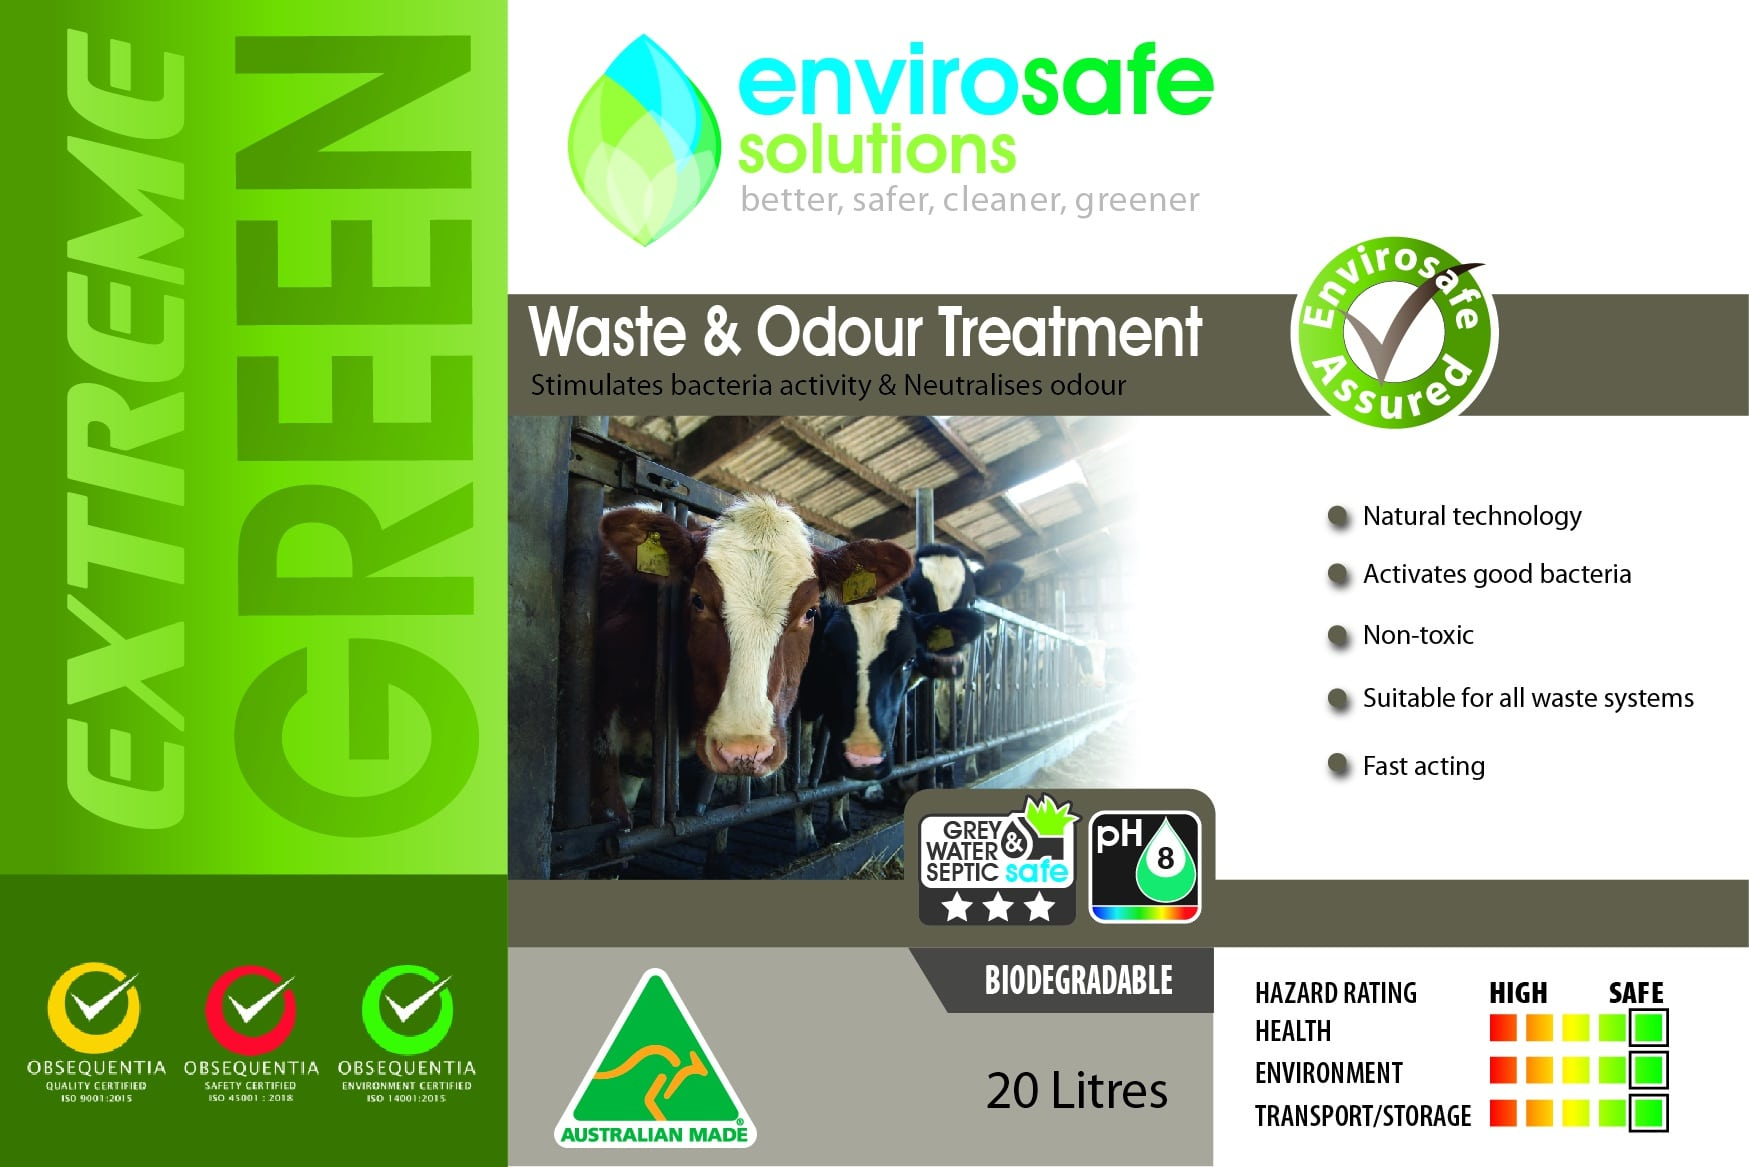 waste_odour_treatment label